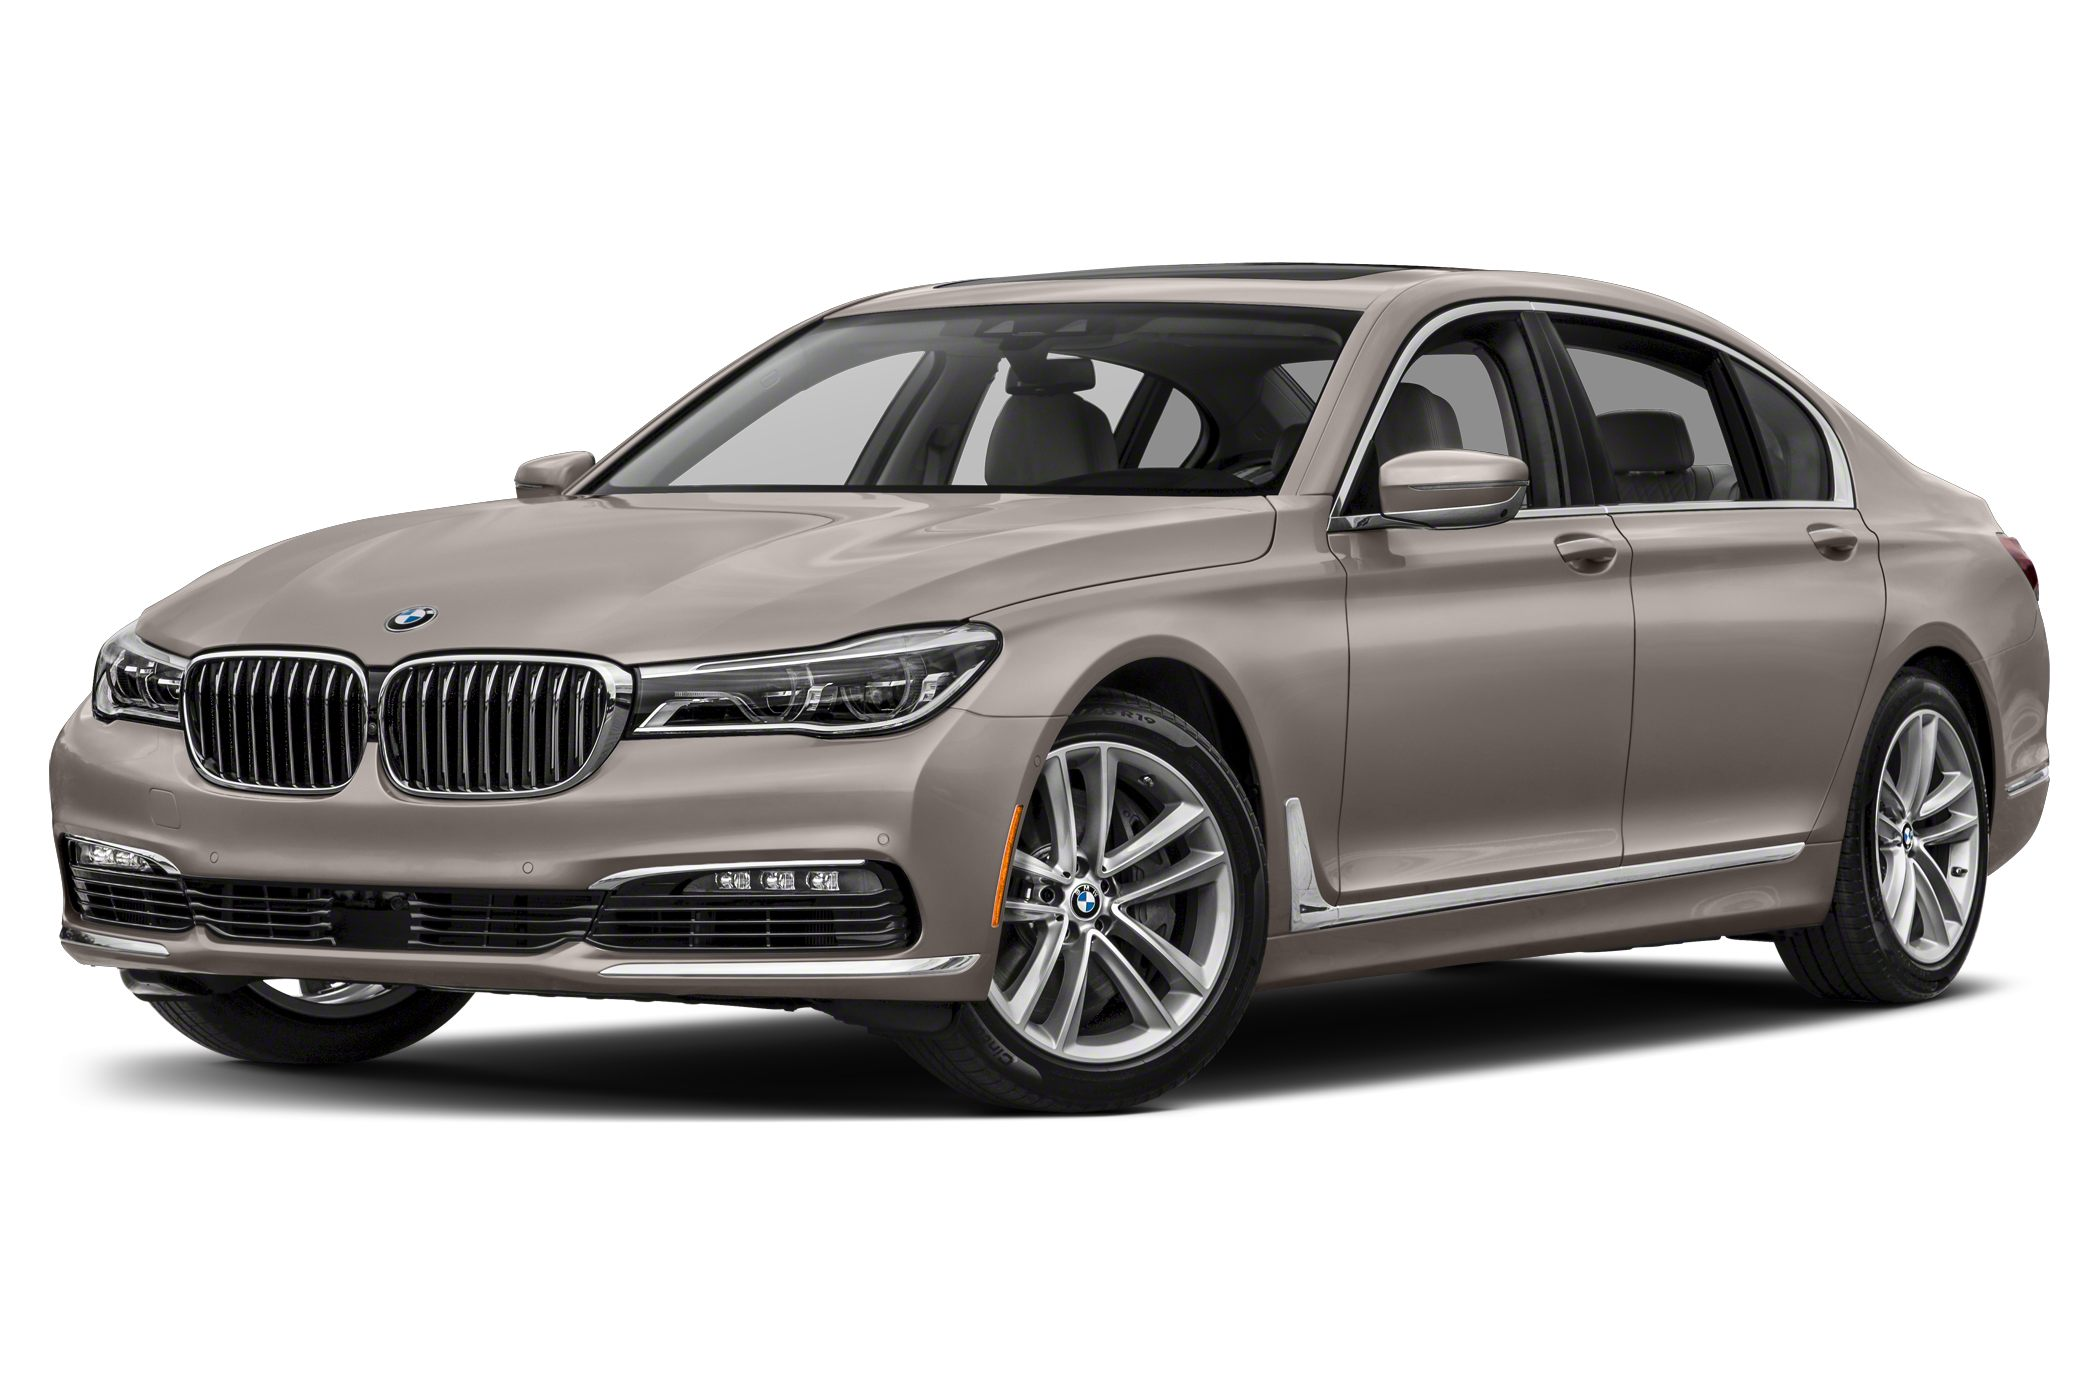 94 New 2020 BMW 750Li Specs and Review